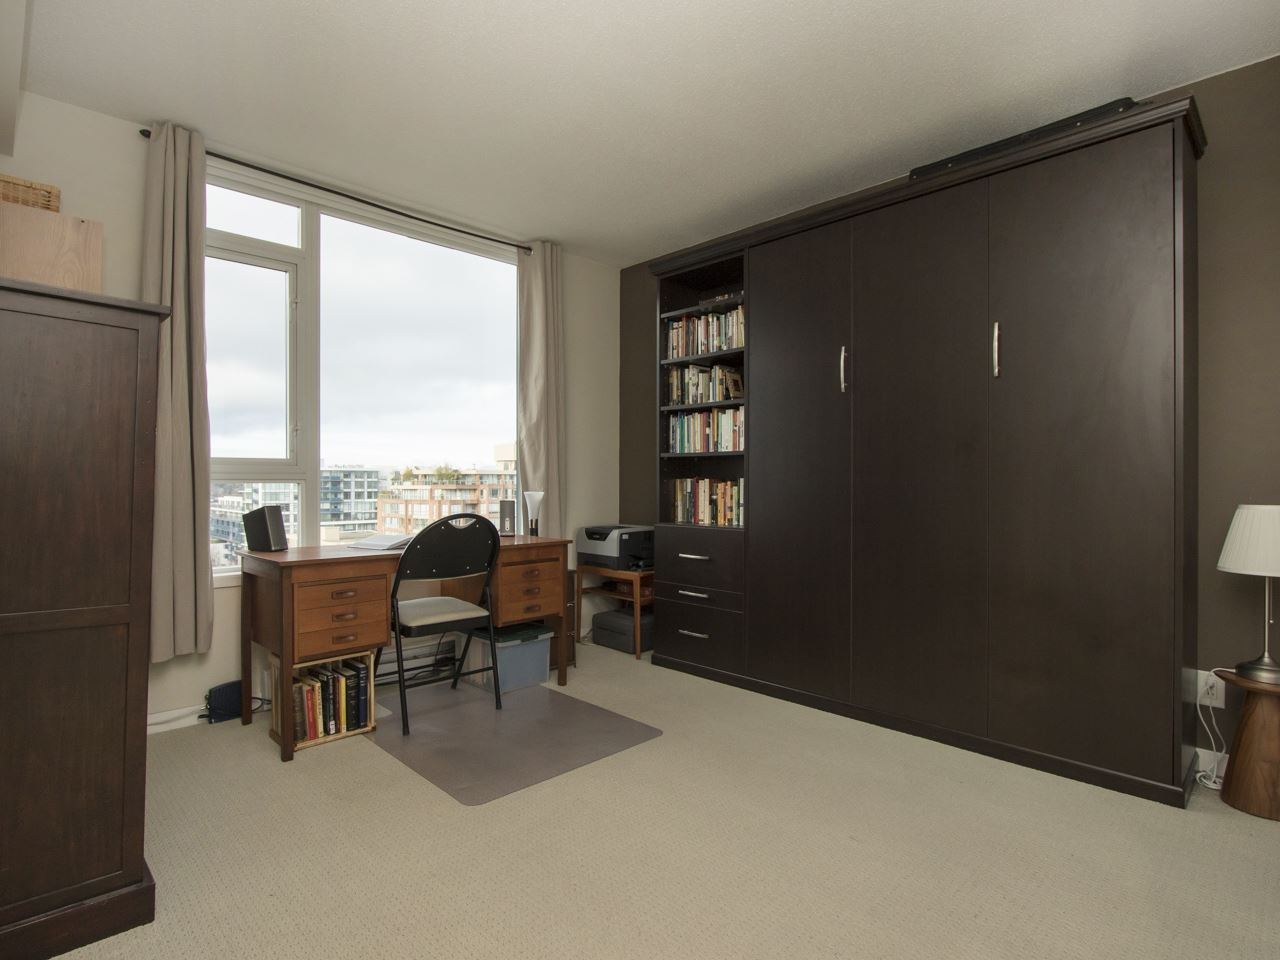 Photo 13: 1002 1650 W 7TH AVENUE in Vancouver: Fairview VW Condo for sale (Vancouver West)  : MLS® # R2022214